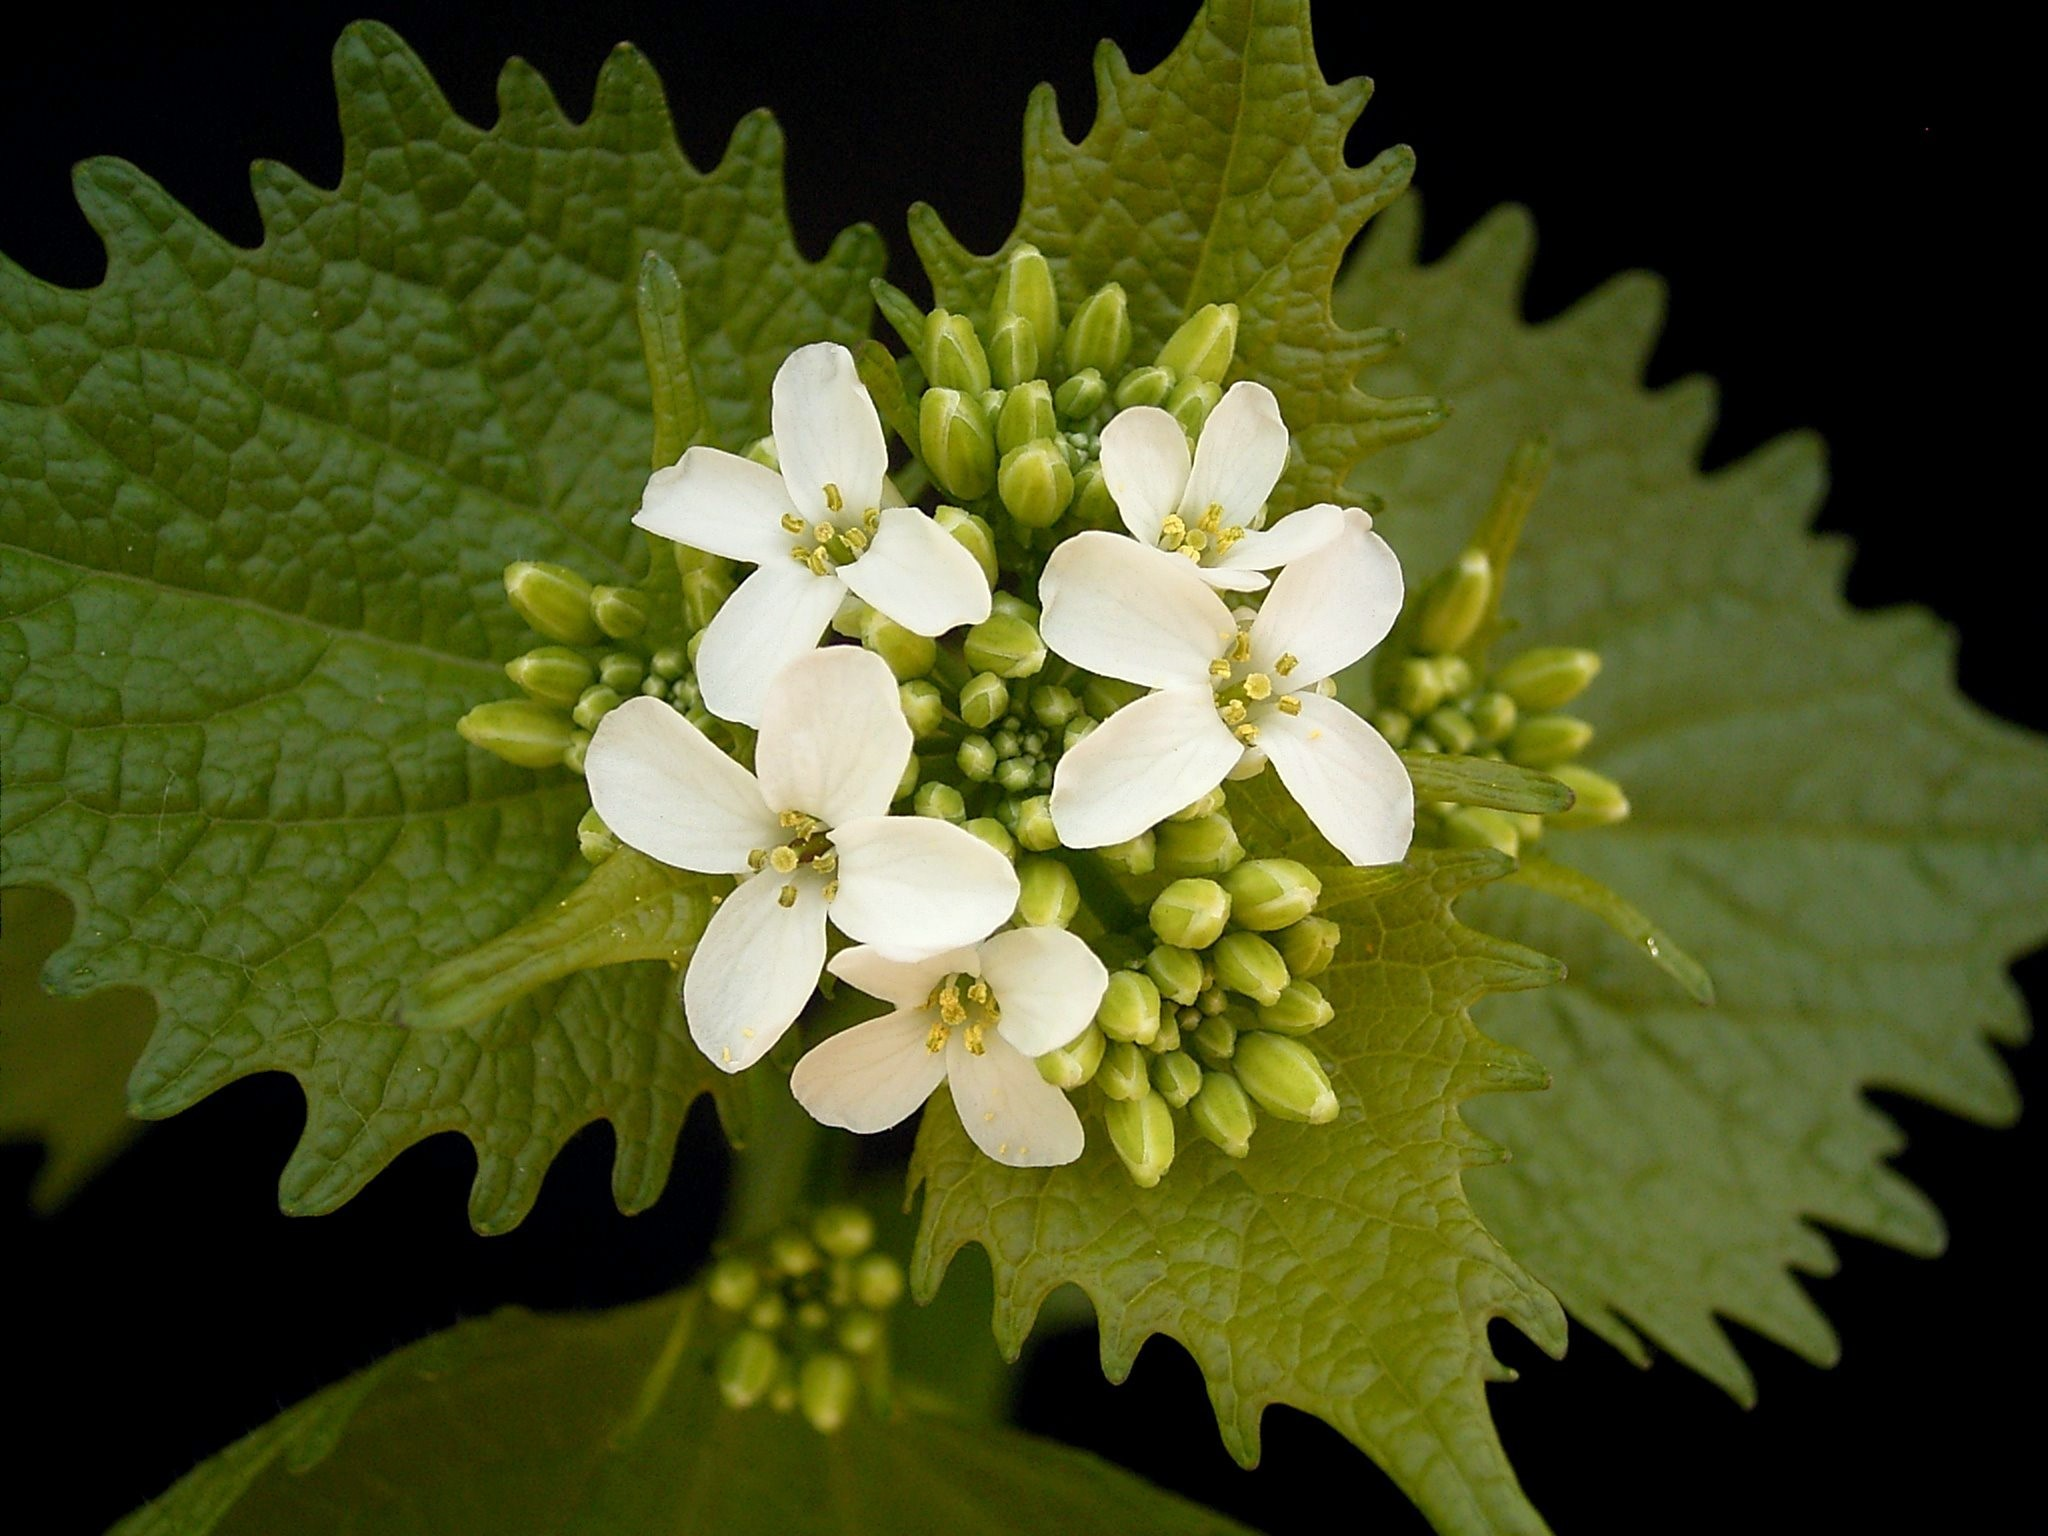 Garlic mustard (Alliaria_petiolata)